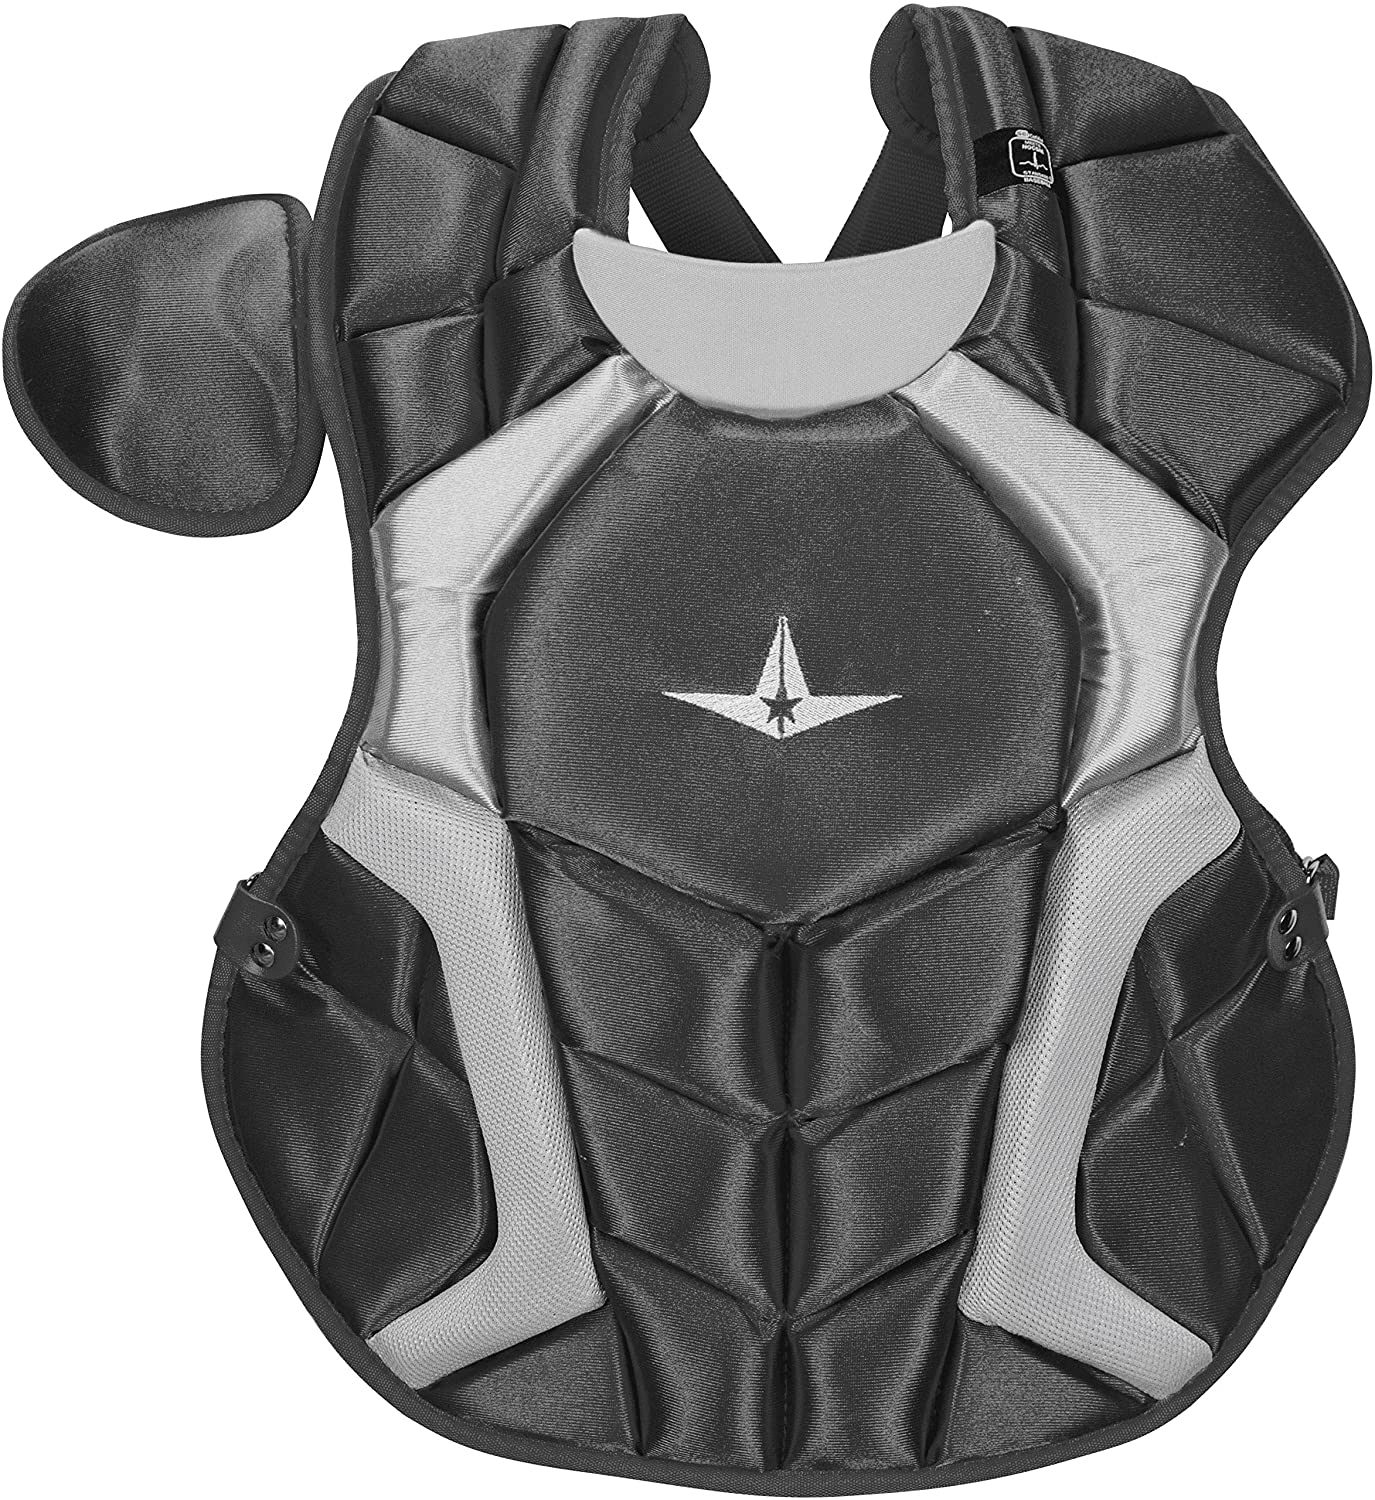 Womens All Star Chest protector